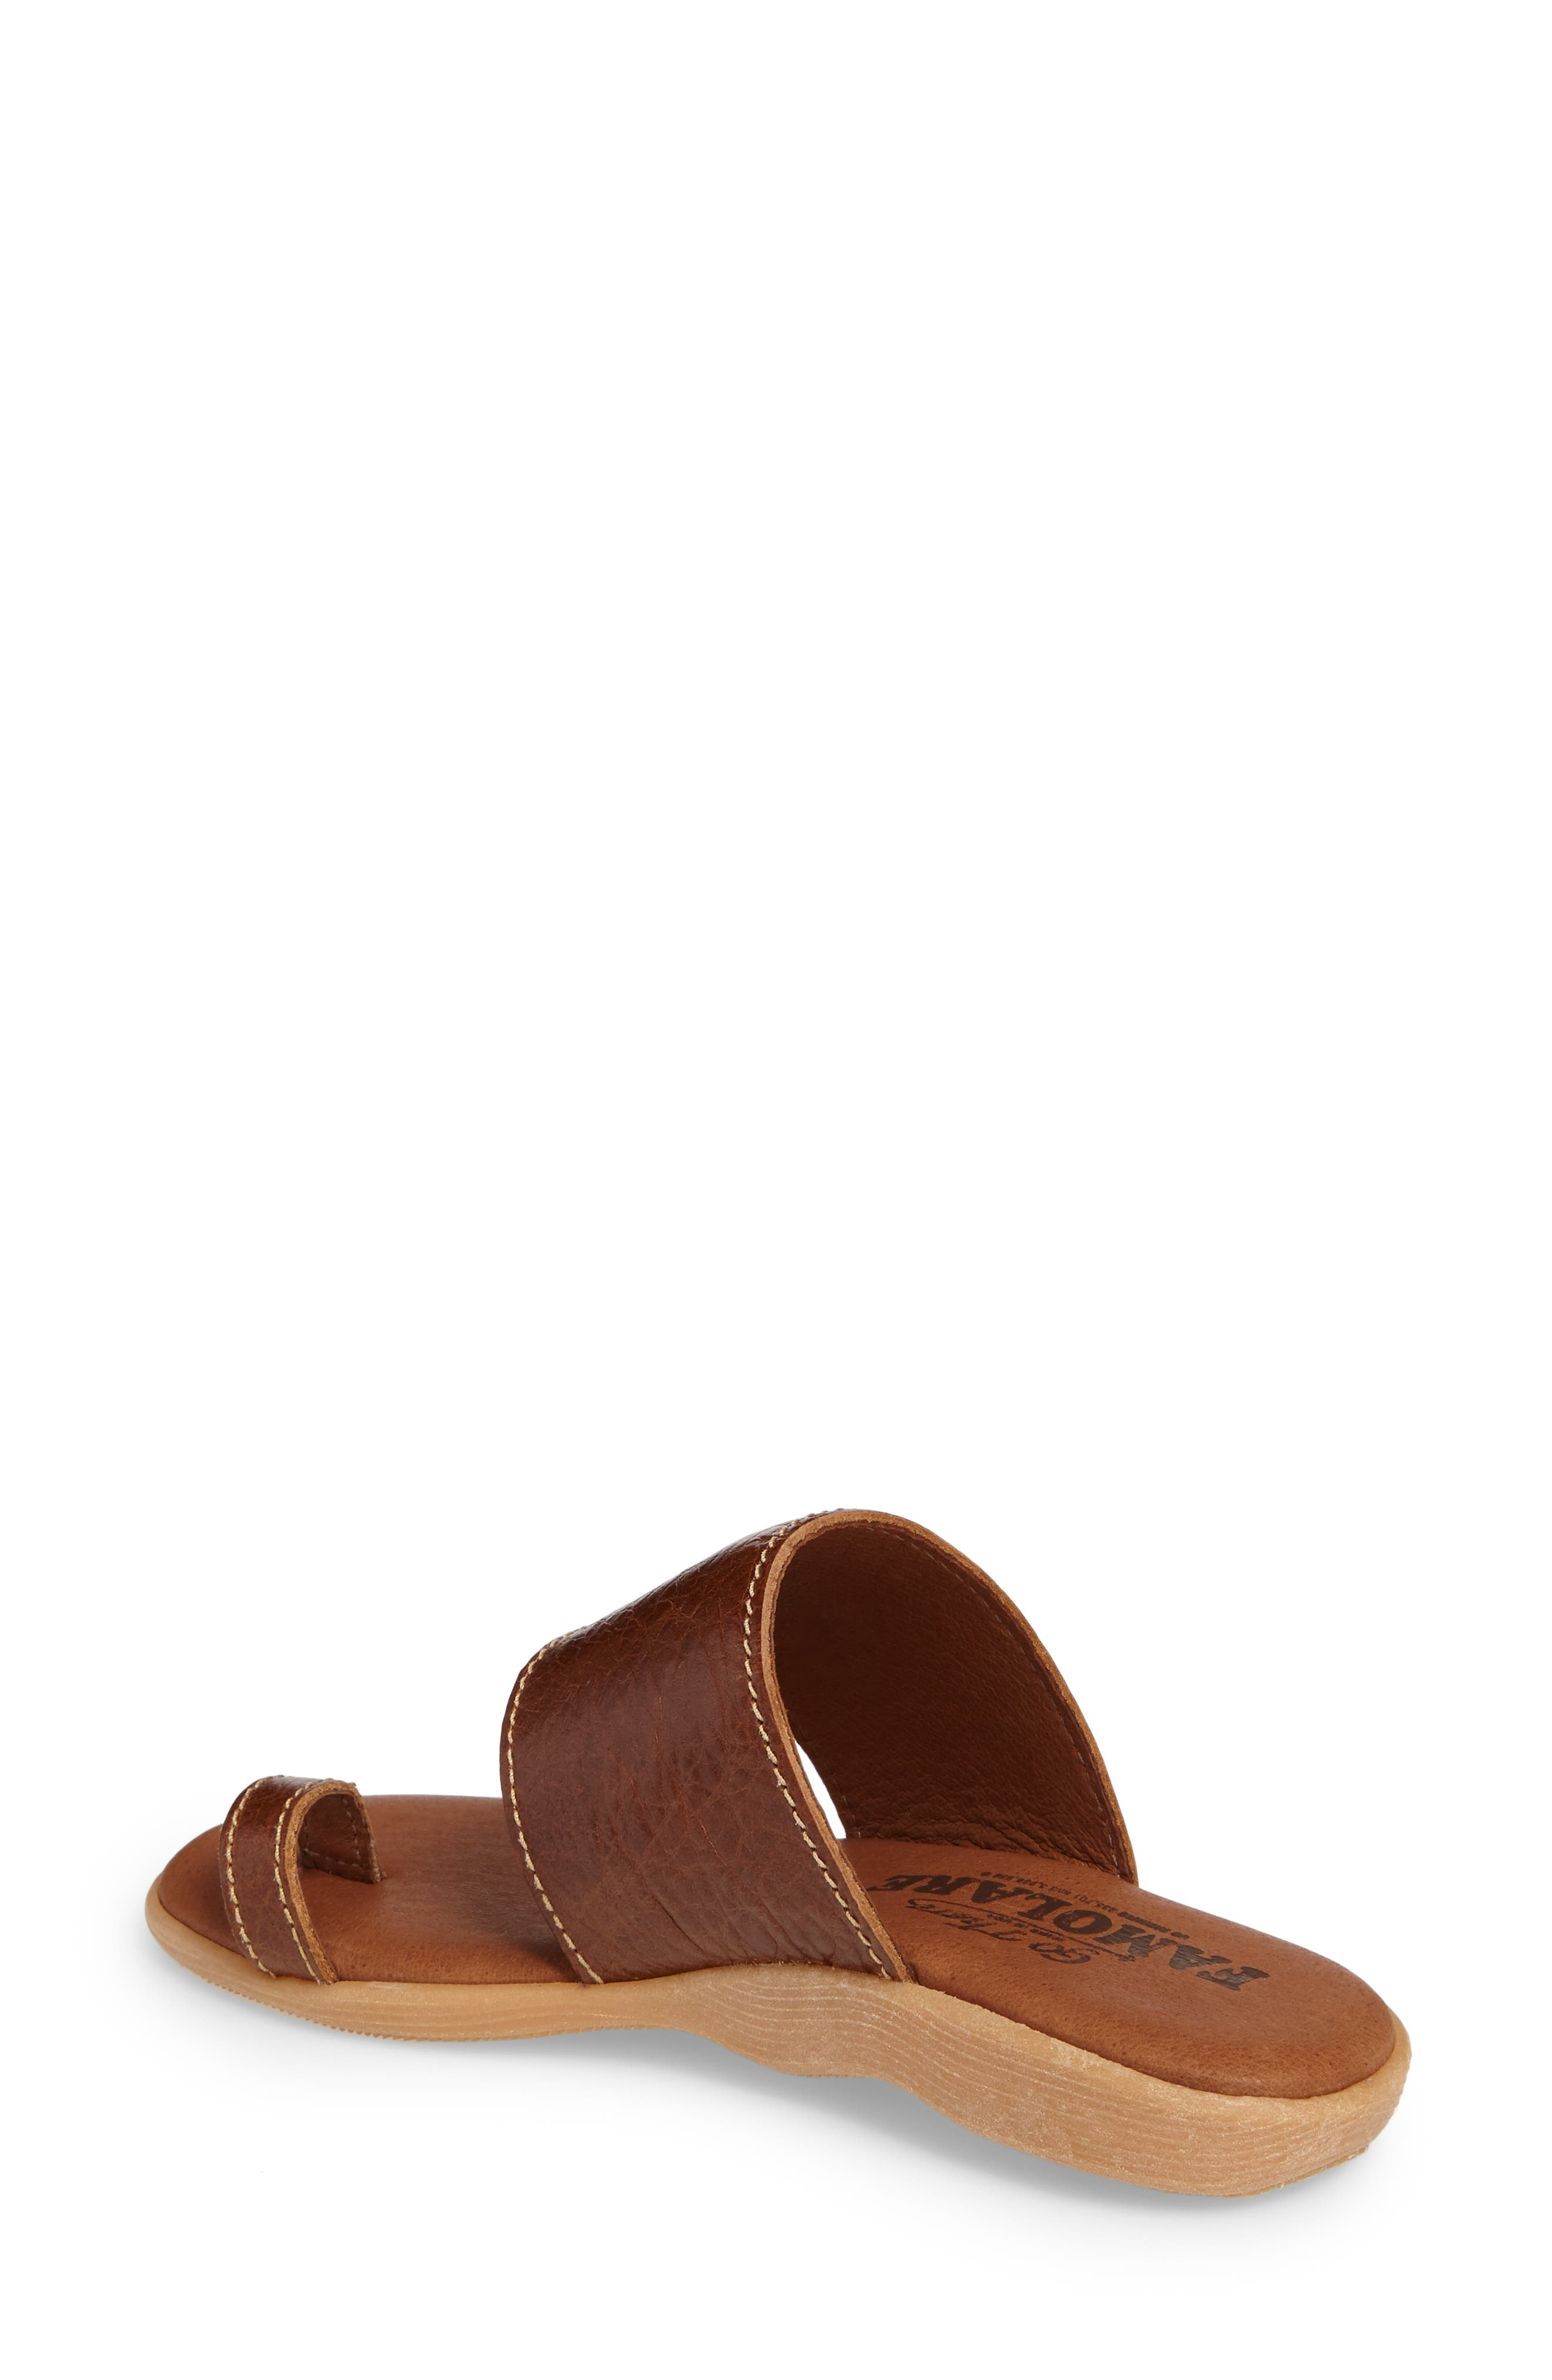 Alternate Image 2  - Famolare Band & Deliver Toe Loop Slide Sandal (Women)